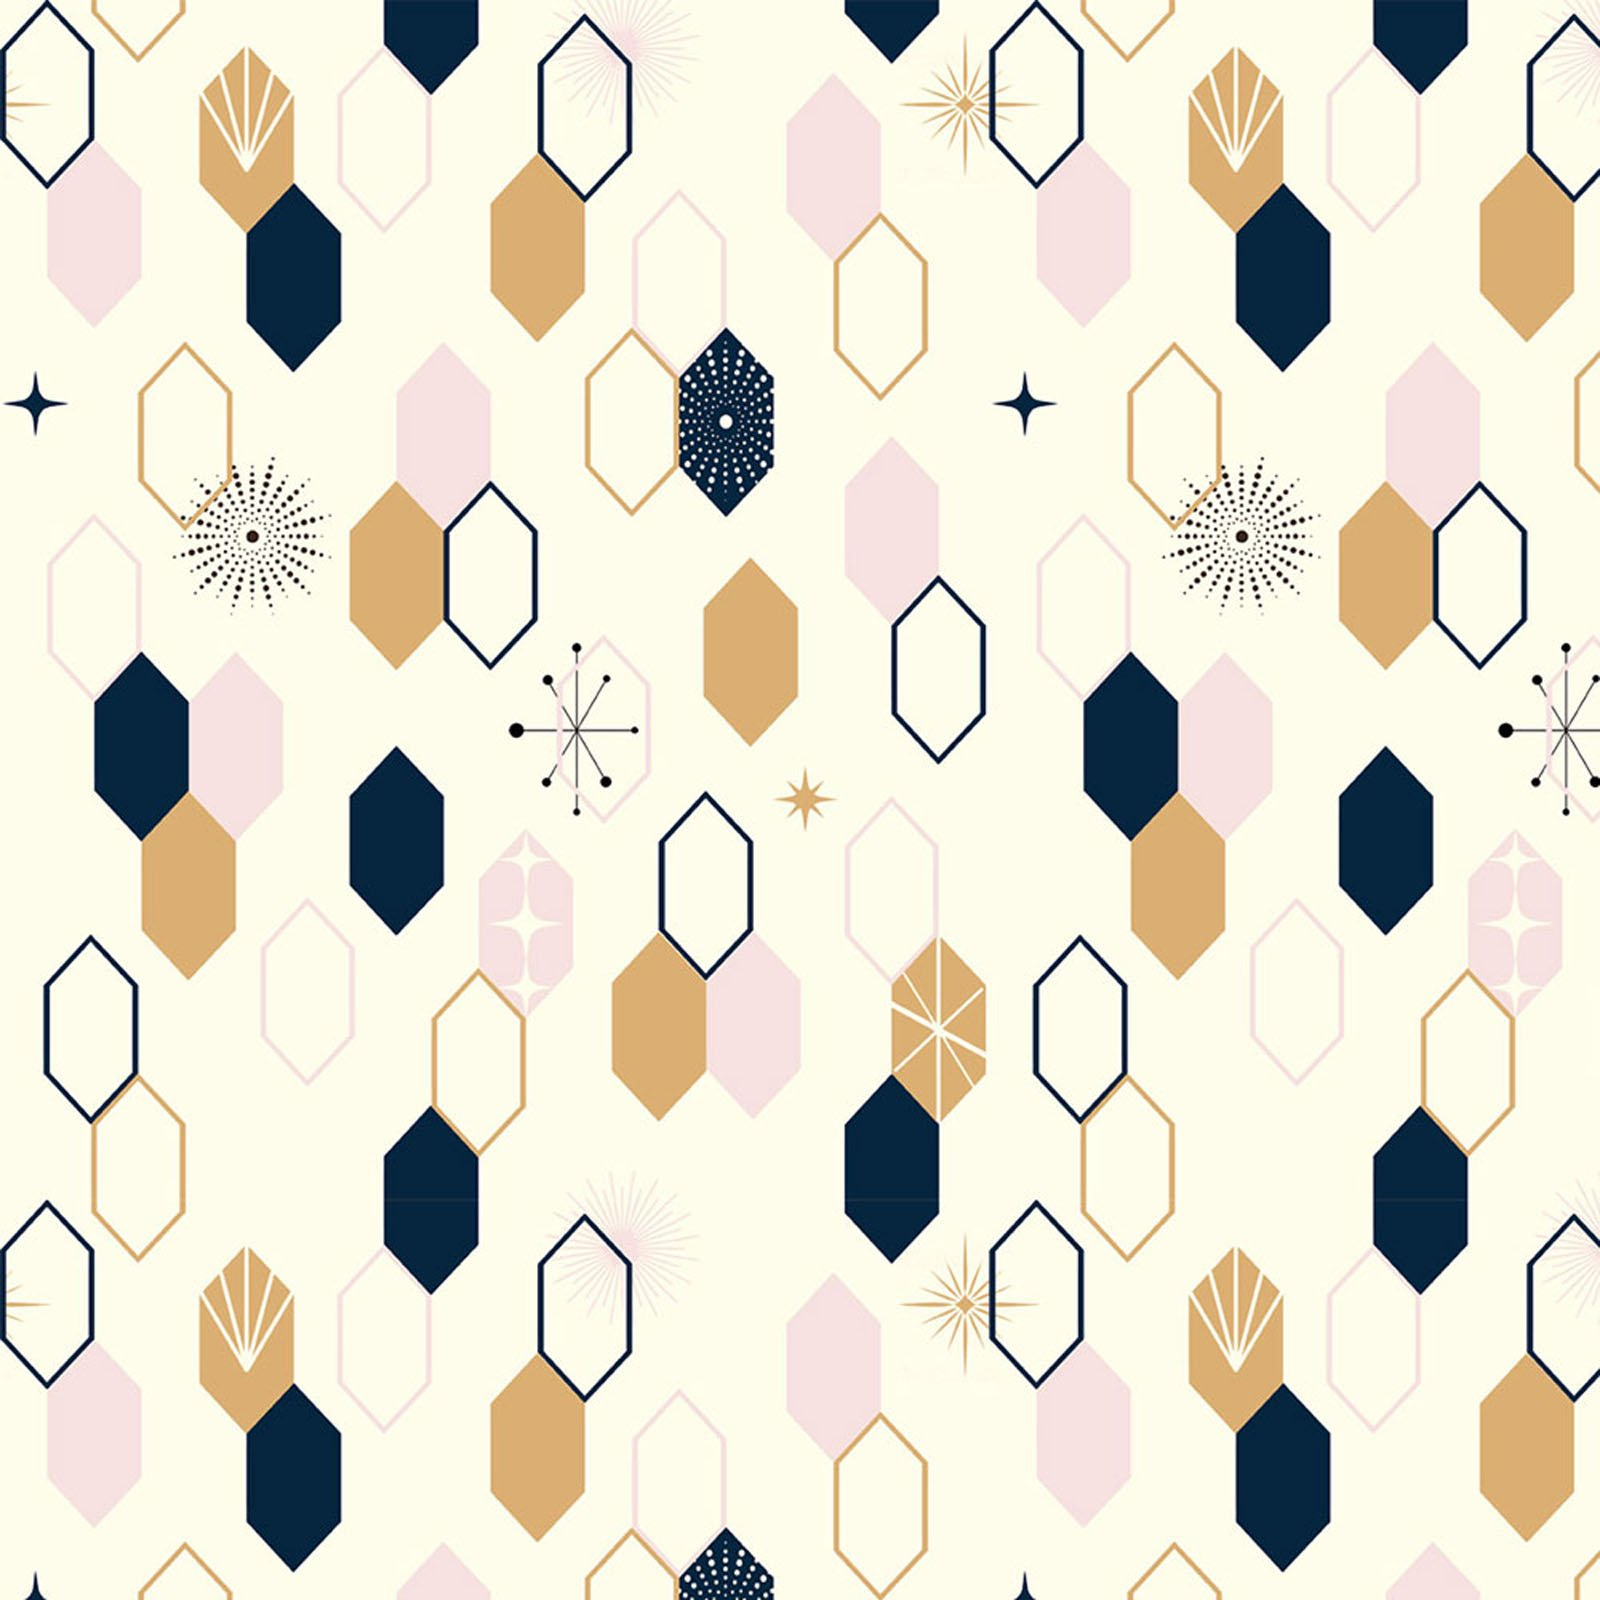 Mod Nouveau- Oblong Hex- Blush- Jay-Cyn- Birch Fabrics- Organic Cotton